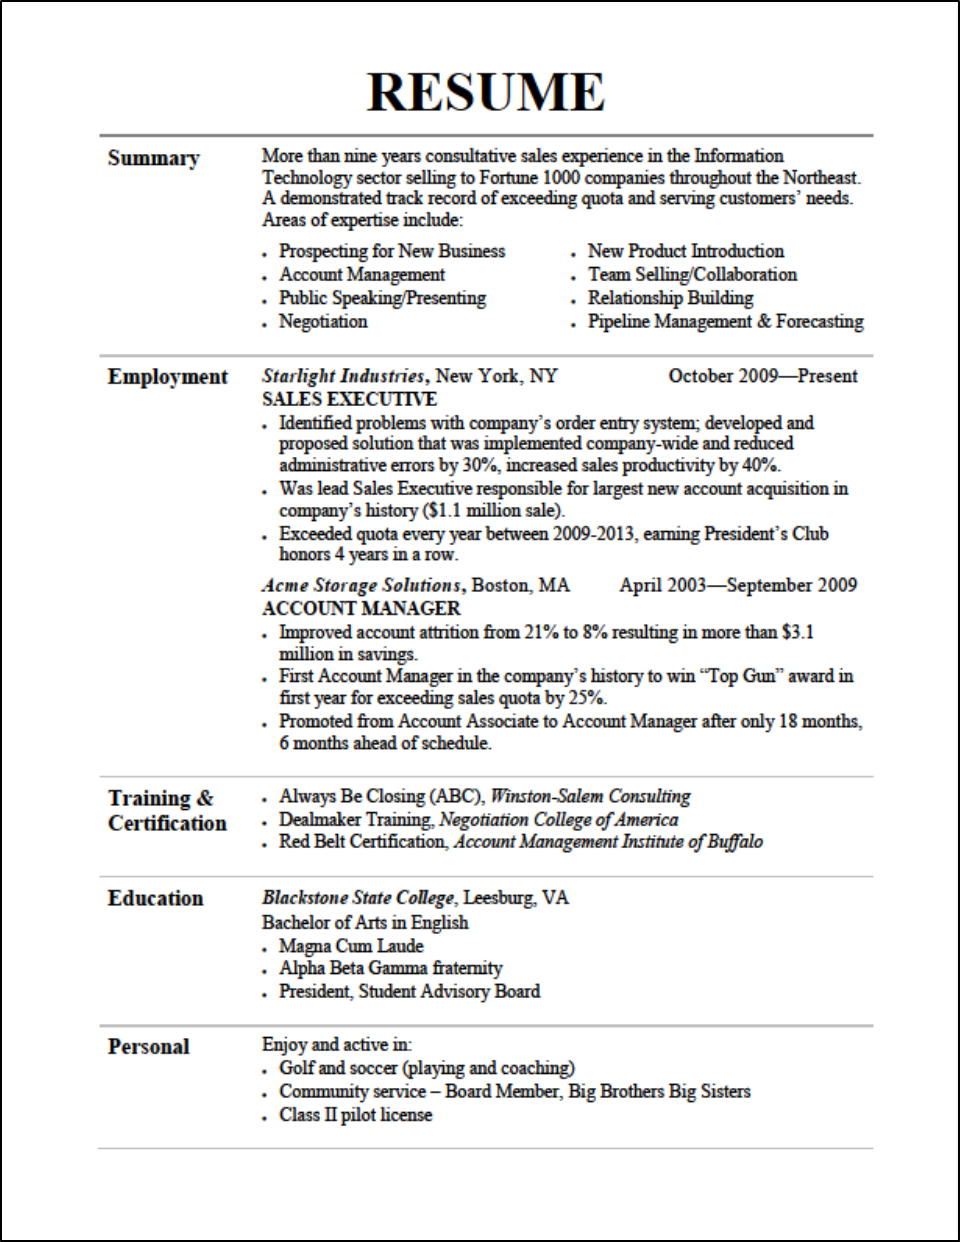 Resume editing services. Professional Resume Writing Services that ...